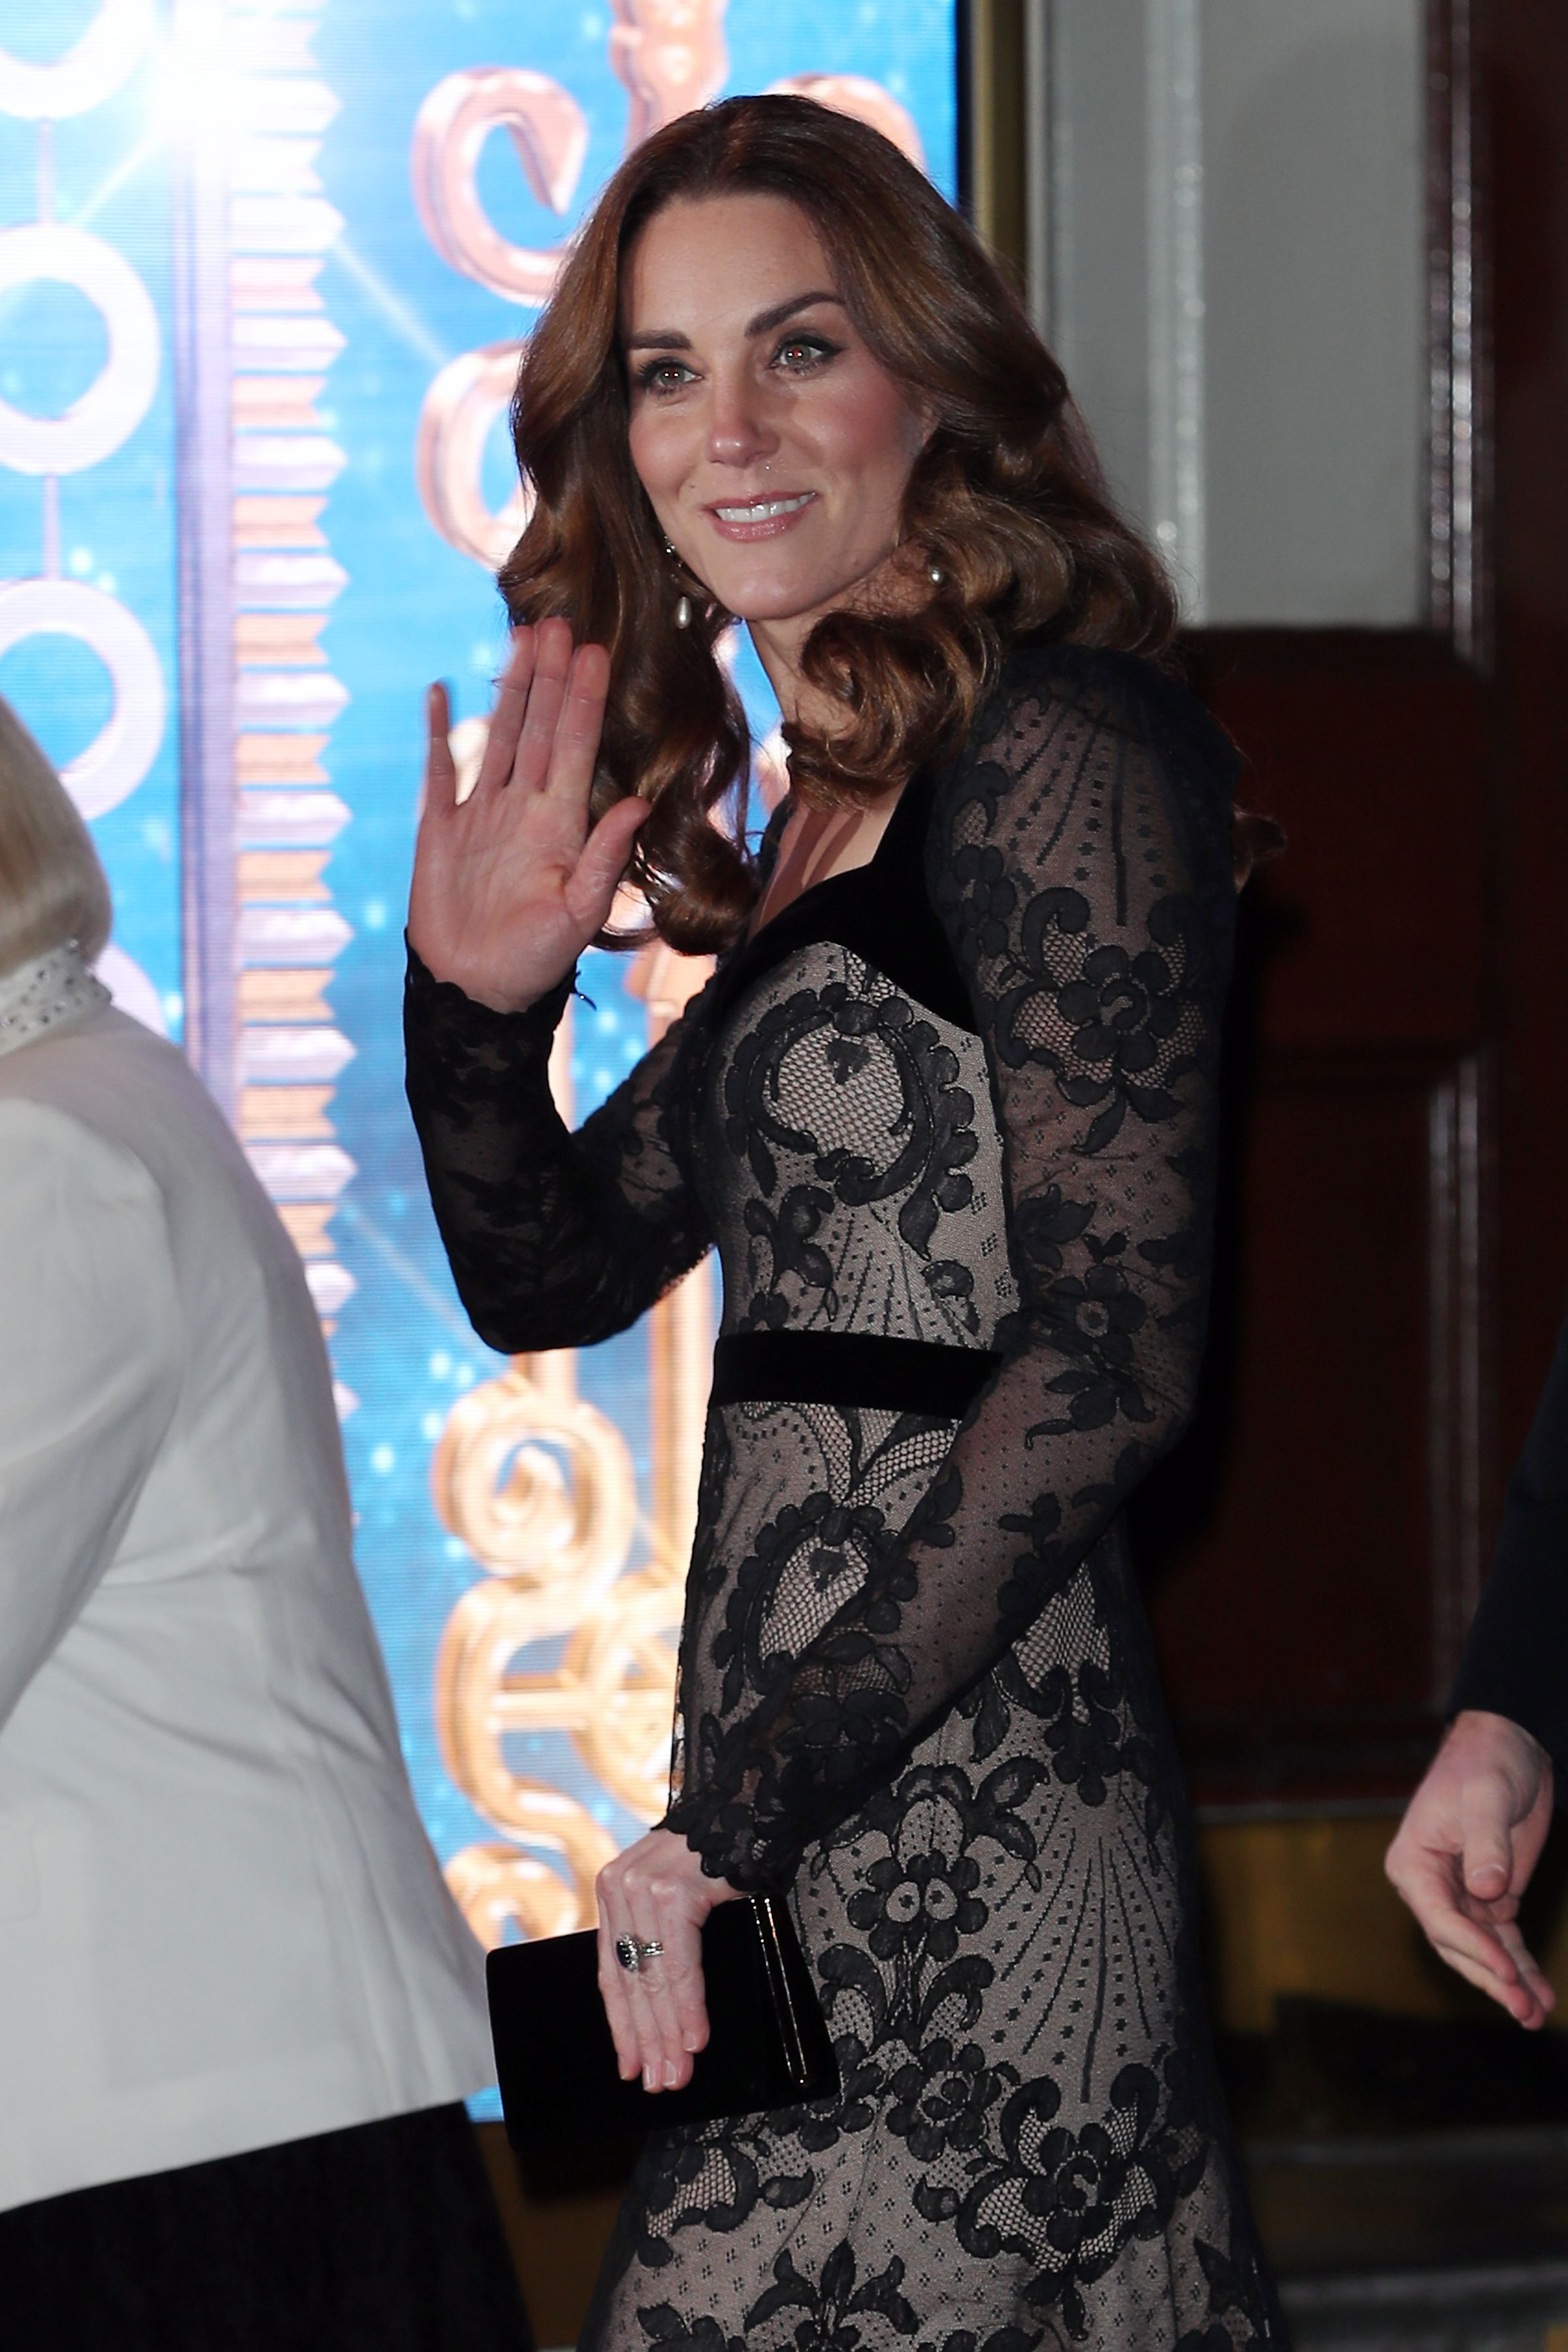 The Duchess of Cambridge looks chic in semi-sheer gown at the Royal Variety Performance